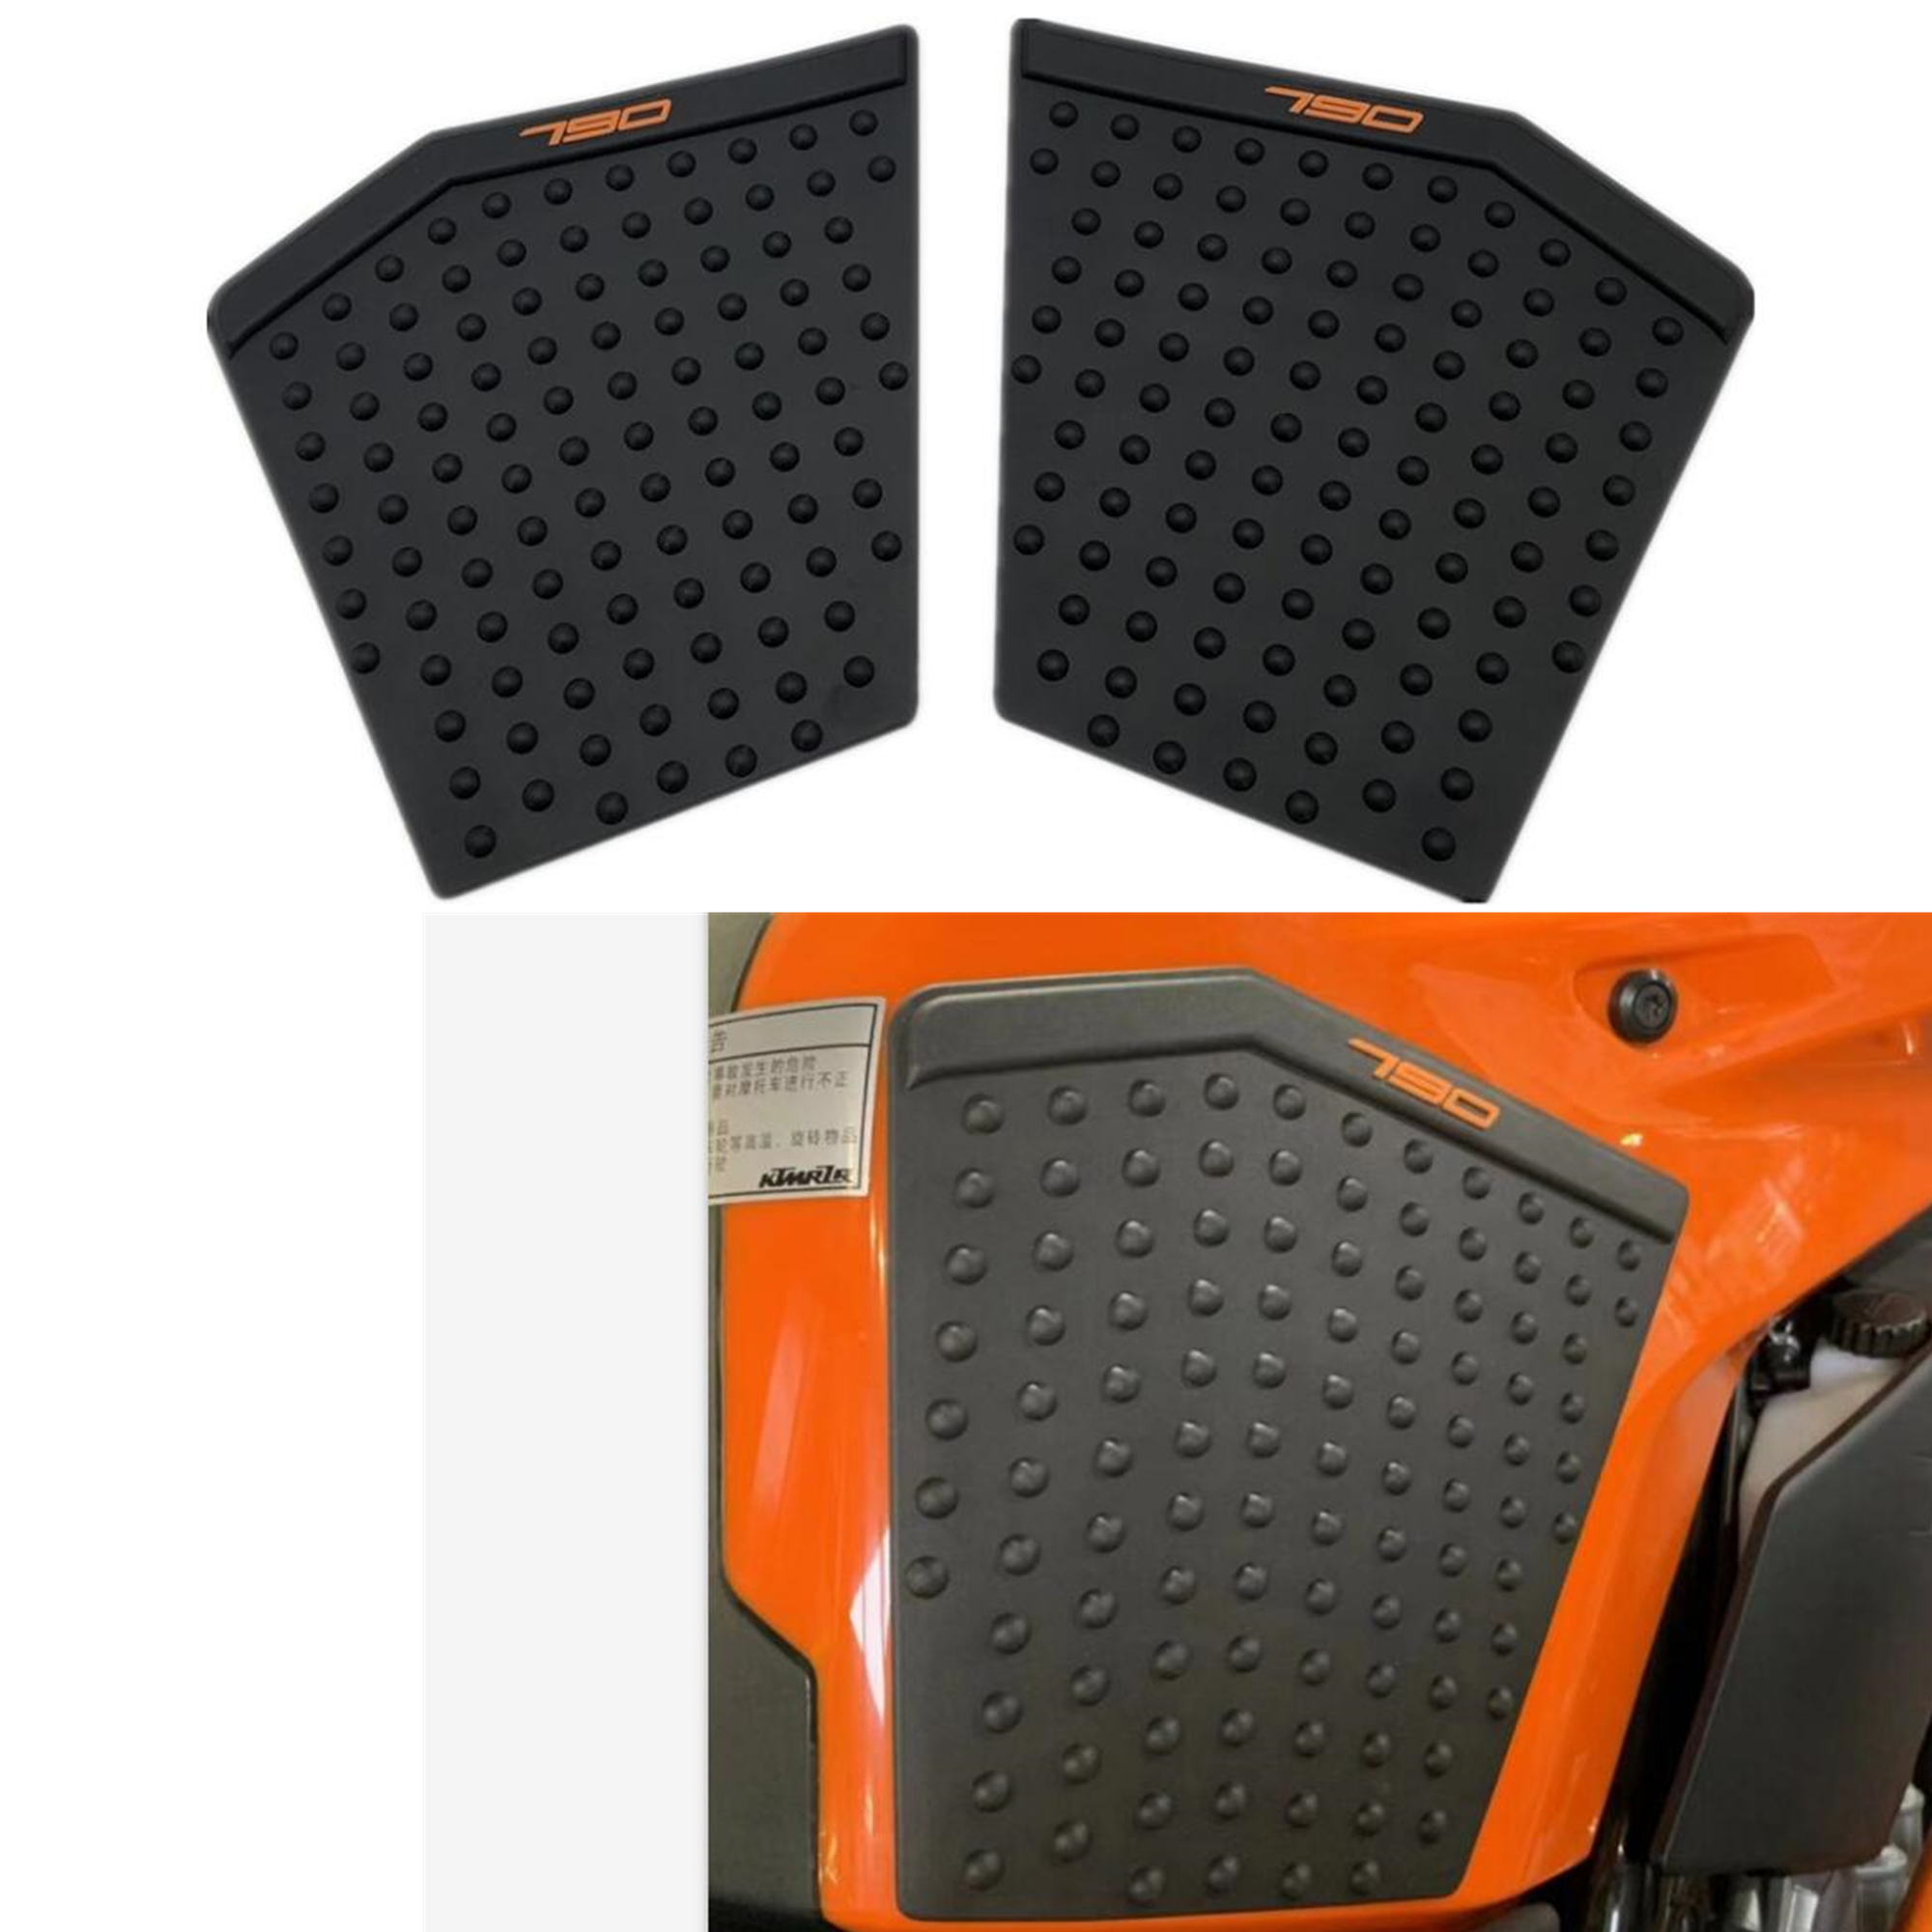 Motorcycle Tank Pad <font><b>Sticker</b></font> For KTM790 KTM <font><b>DUKE</b></font> 790 2018 2019 Tank Side Gas Knee Grips Protector Decal Antiskid Rubber <font><b>Stickers</b></font> image